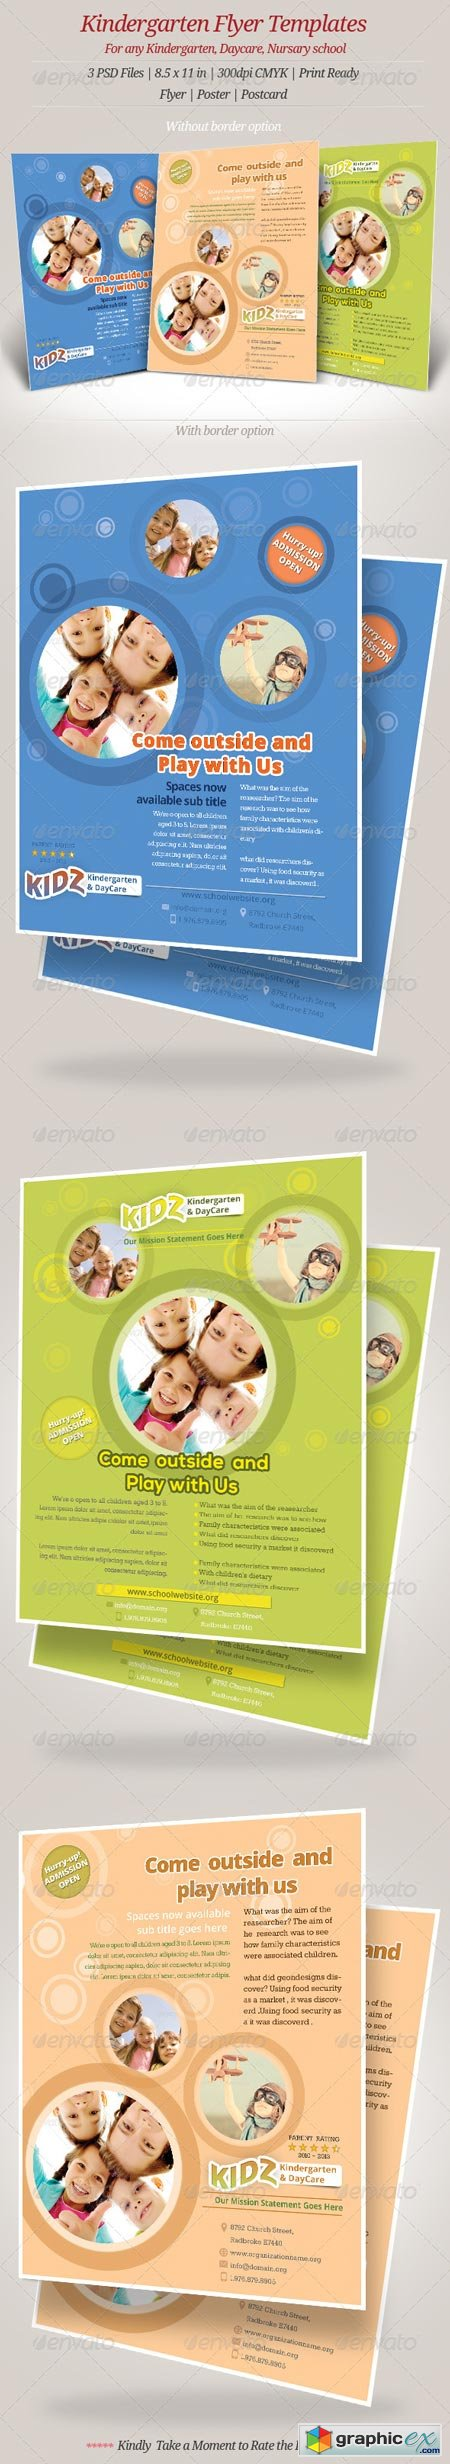 kindergarten daycare flyer templates  kindergarten daycare flyer templates 6972717